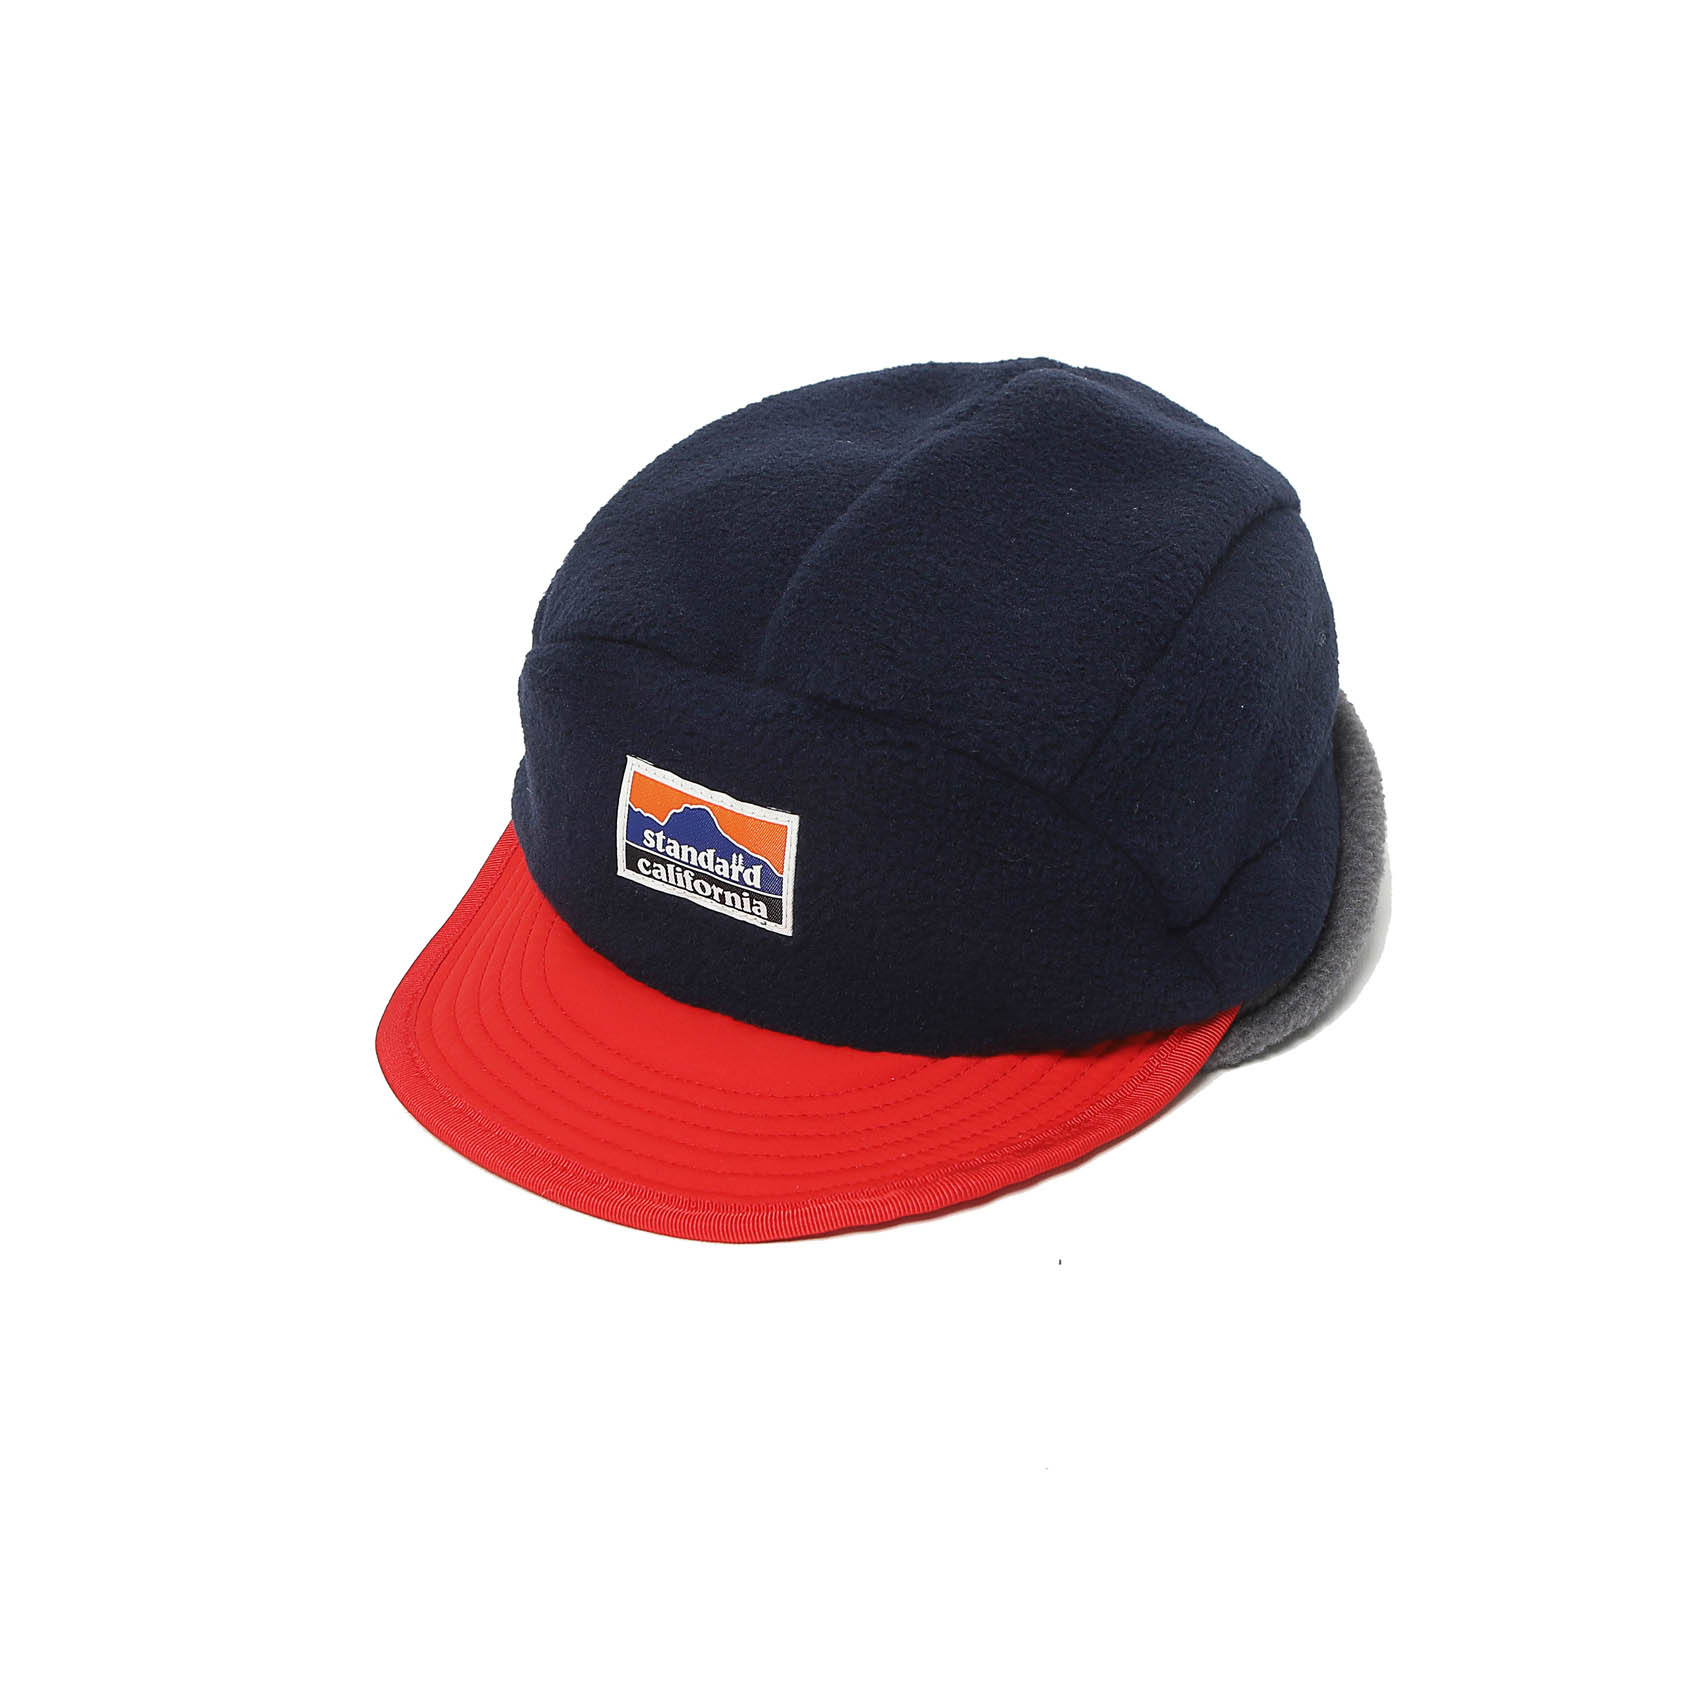 EAR FLAP FLEECE CAP - NAVY